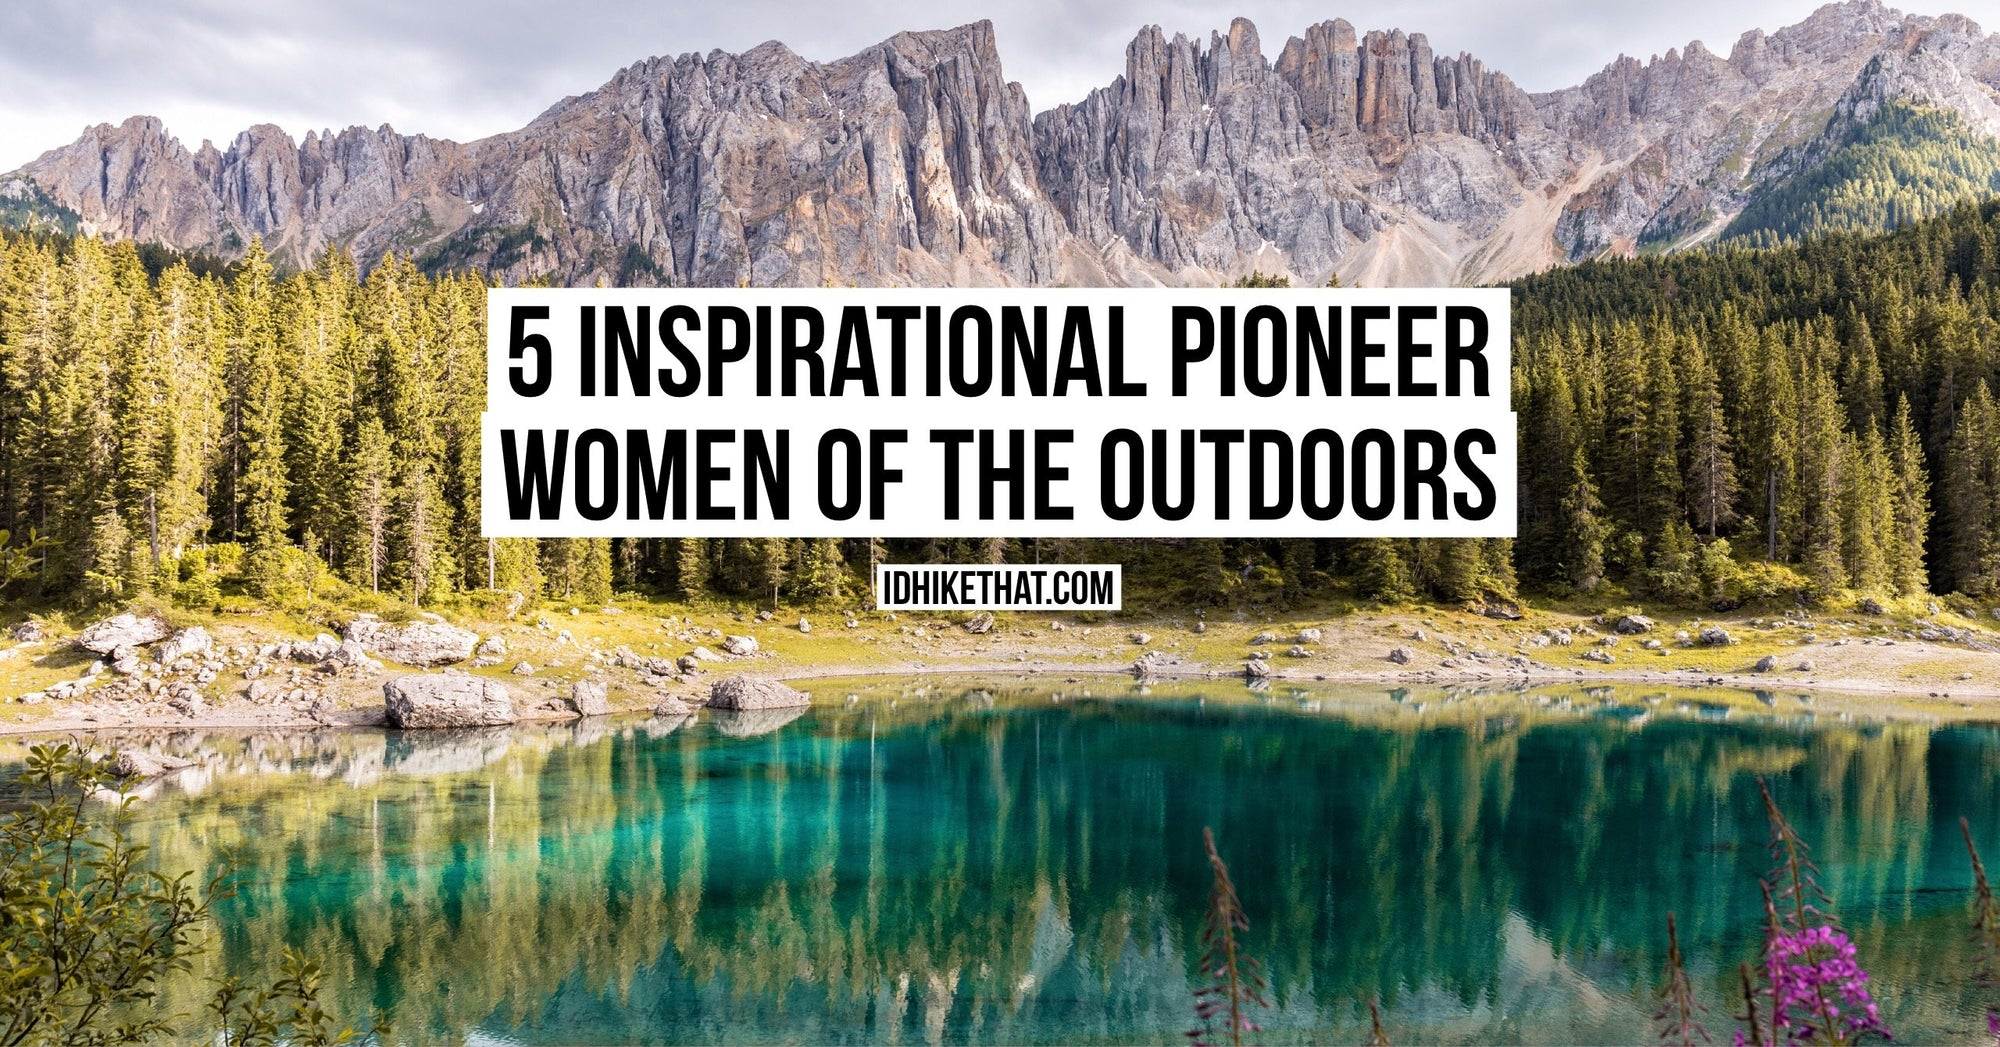 5 Inspirational Pioneer women of the outdoors. Visit idhikethat.com to learn their stories and be inspired